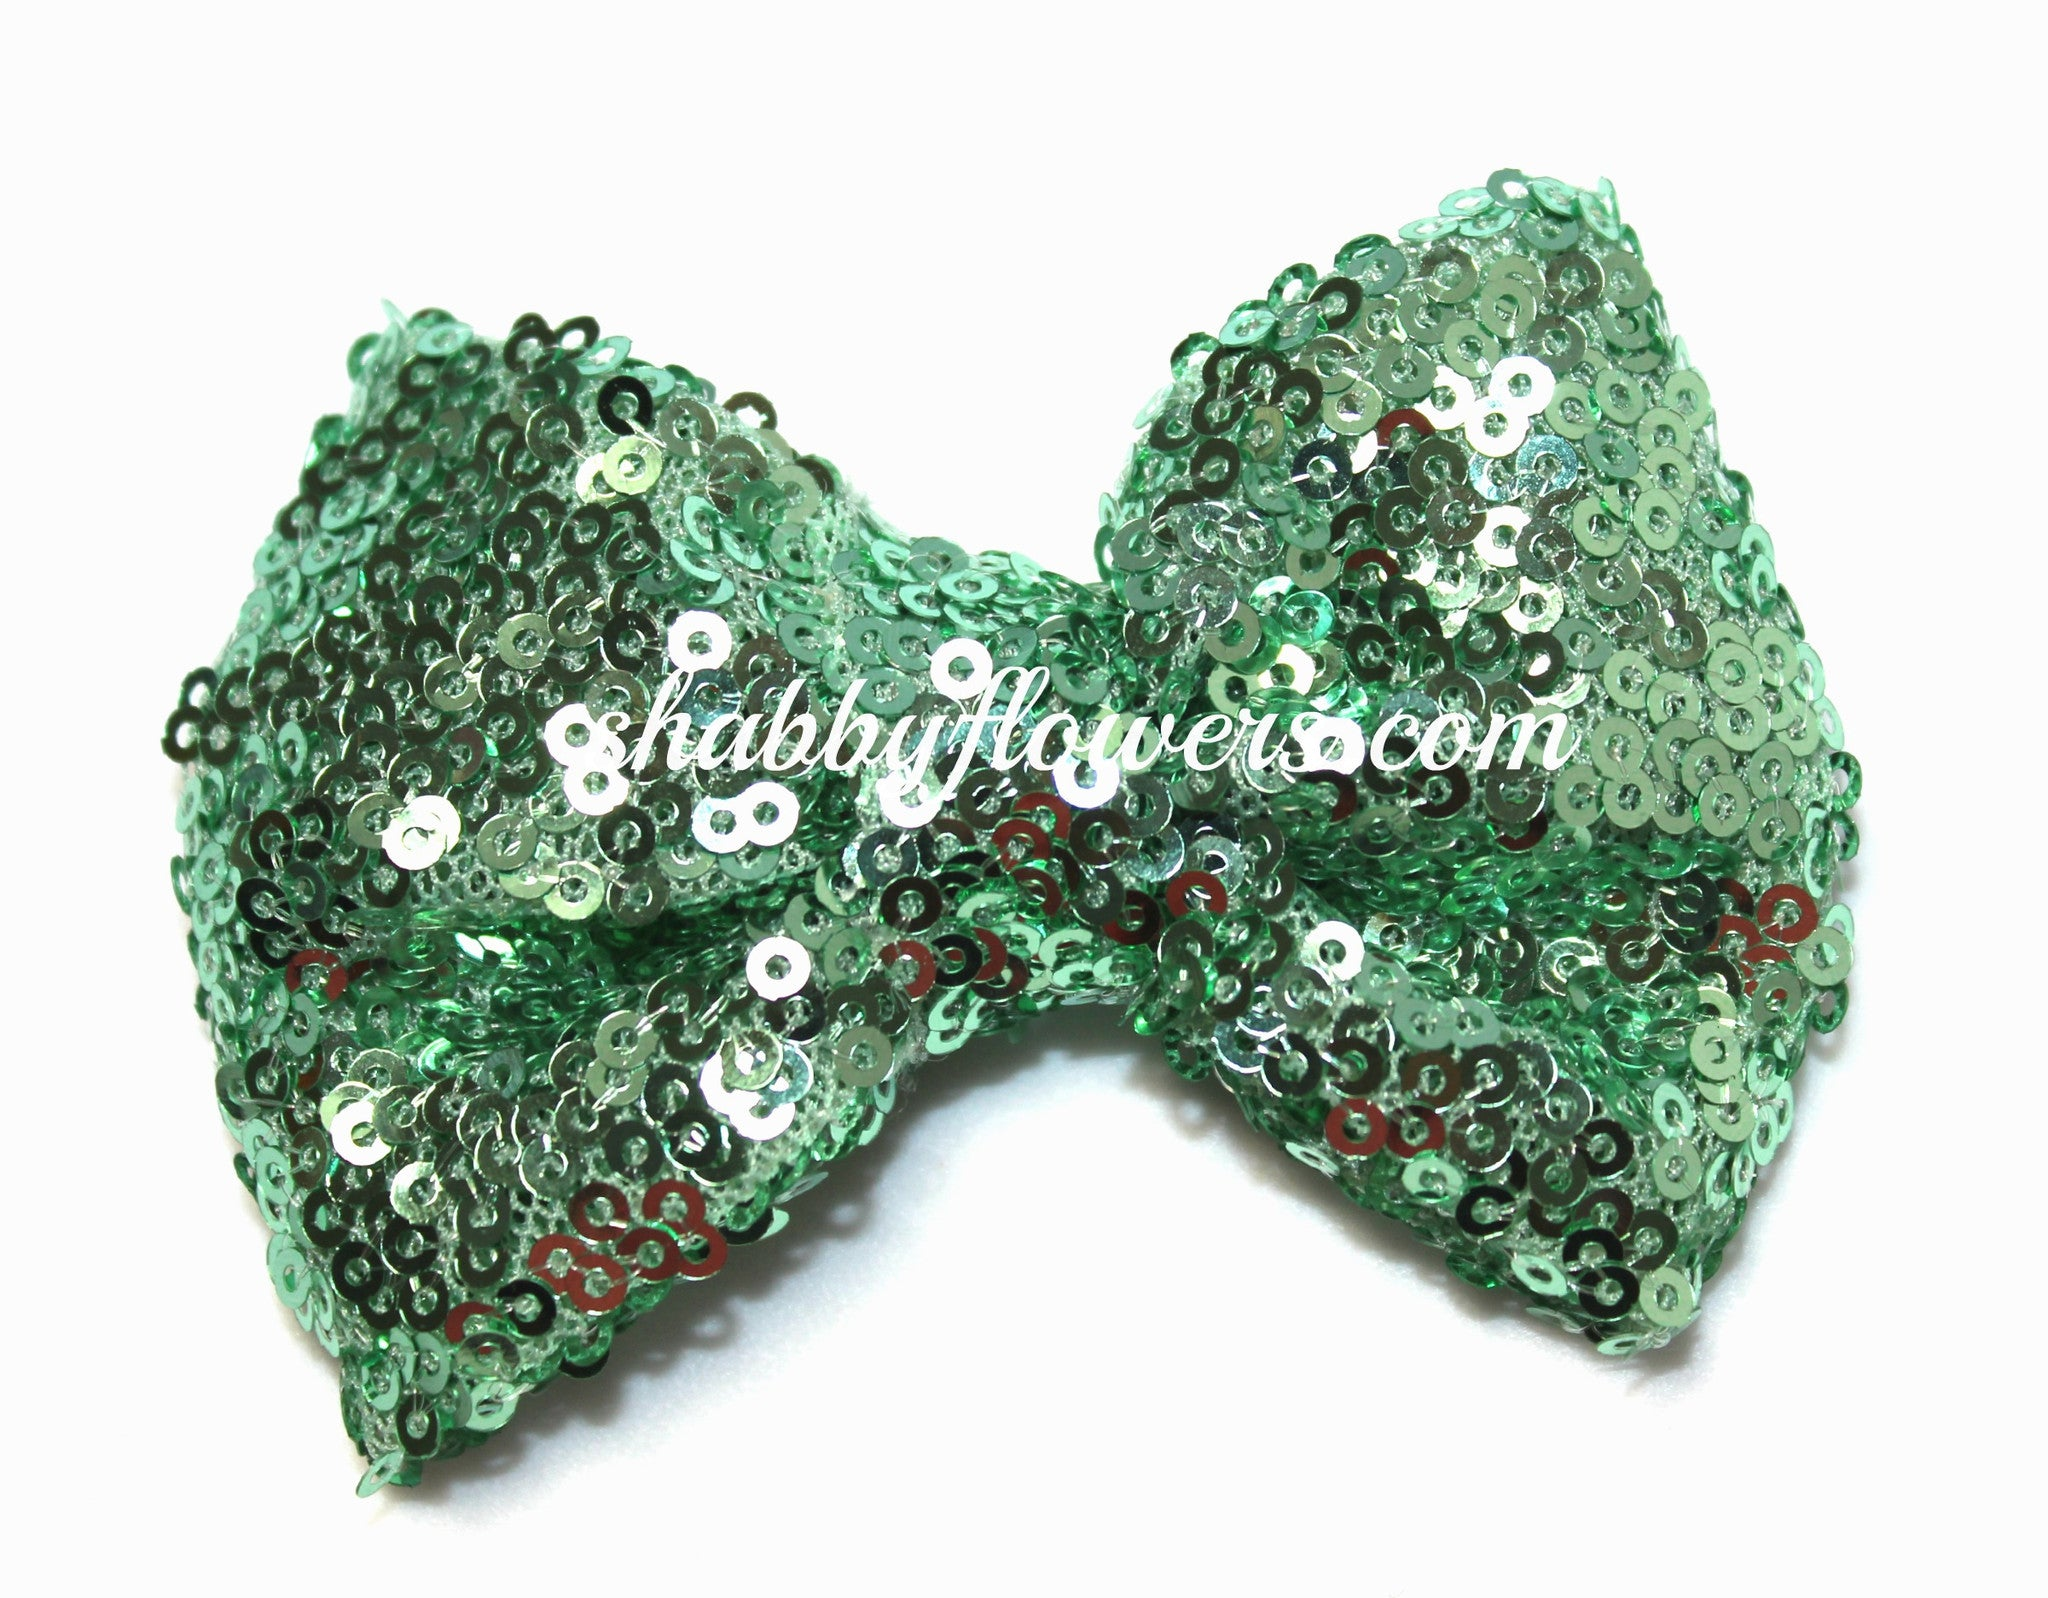 Medium Sequin Bow - Mint - shabbyflowers.com